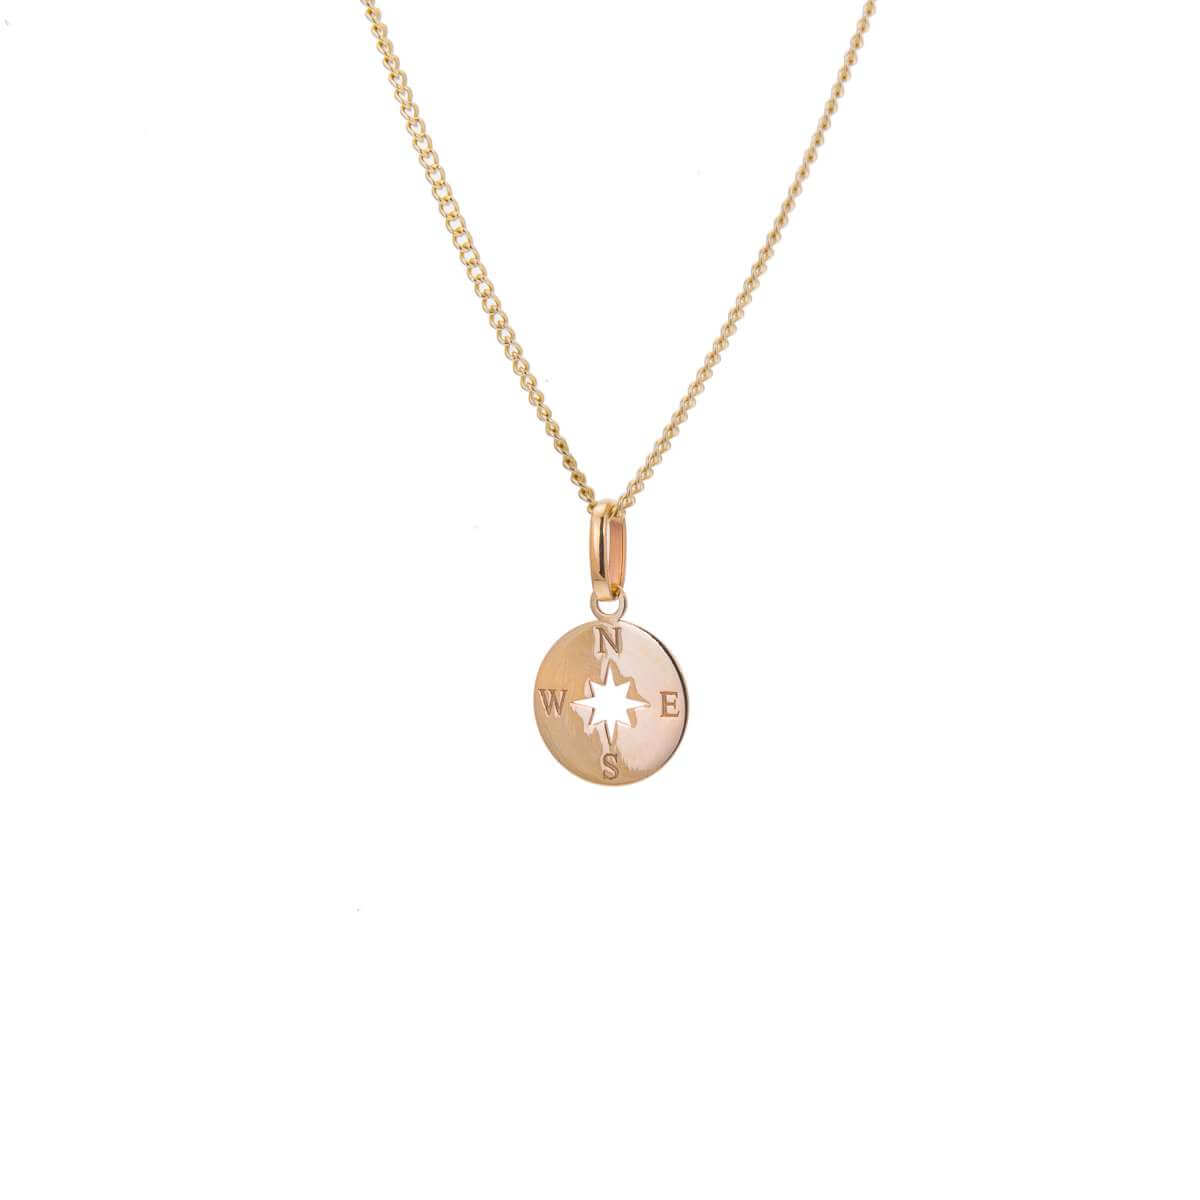 9ct Gold Compass Necklace - 16 - 18 Inches